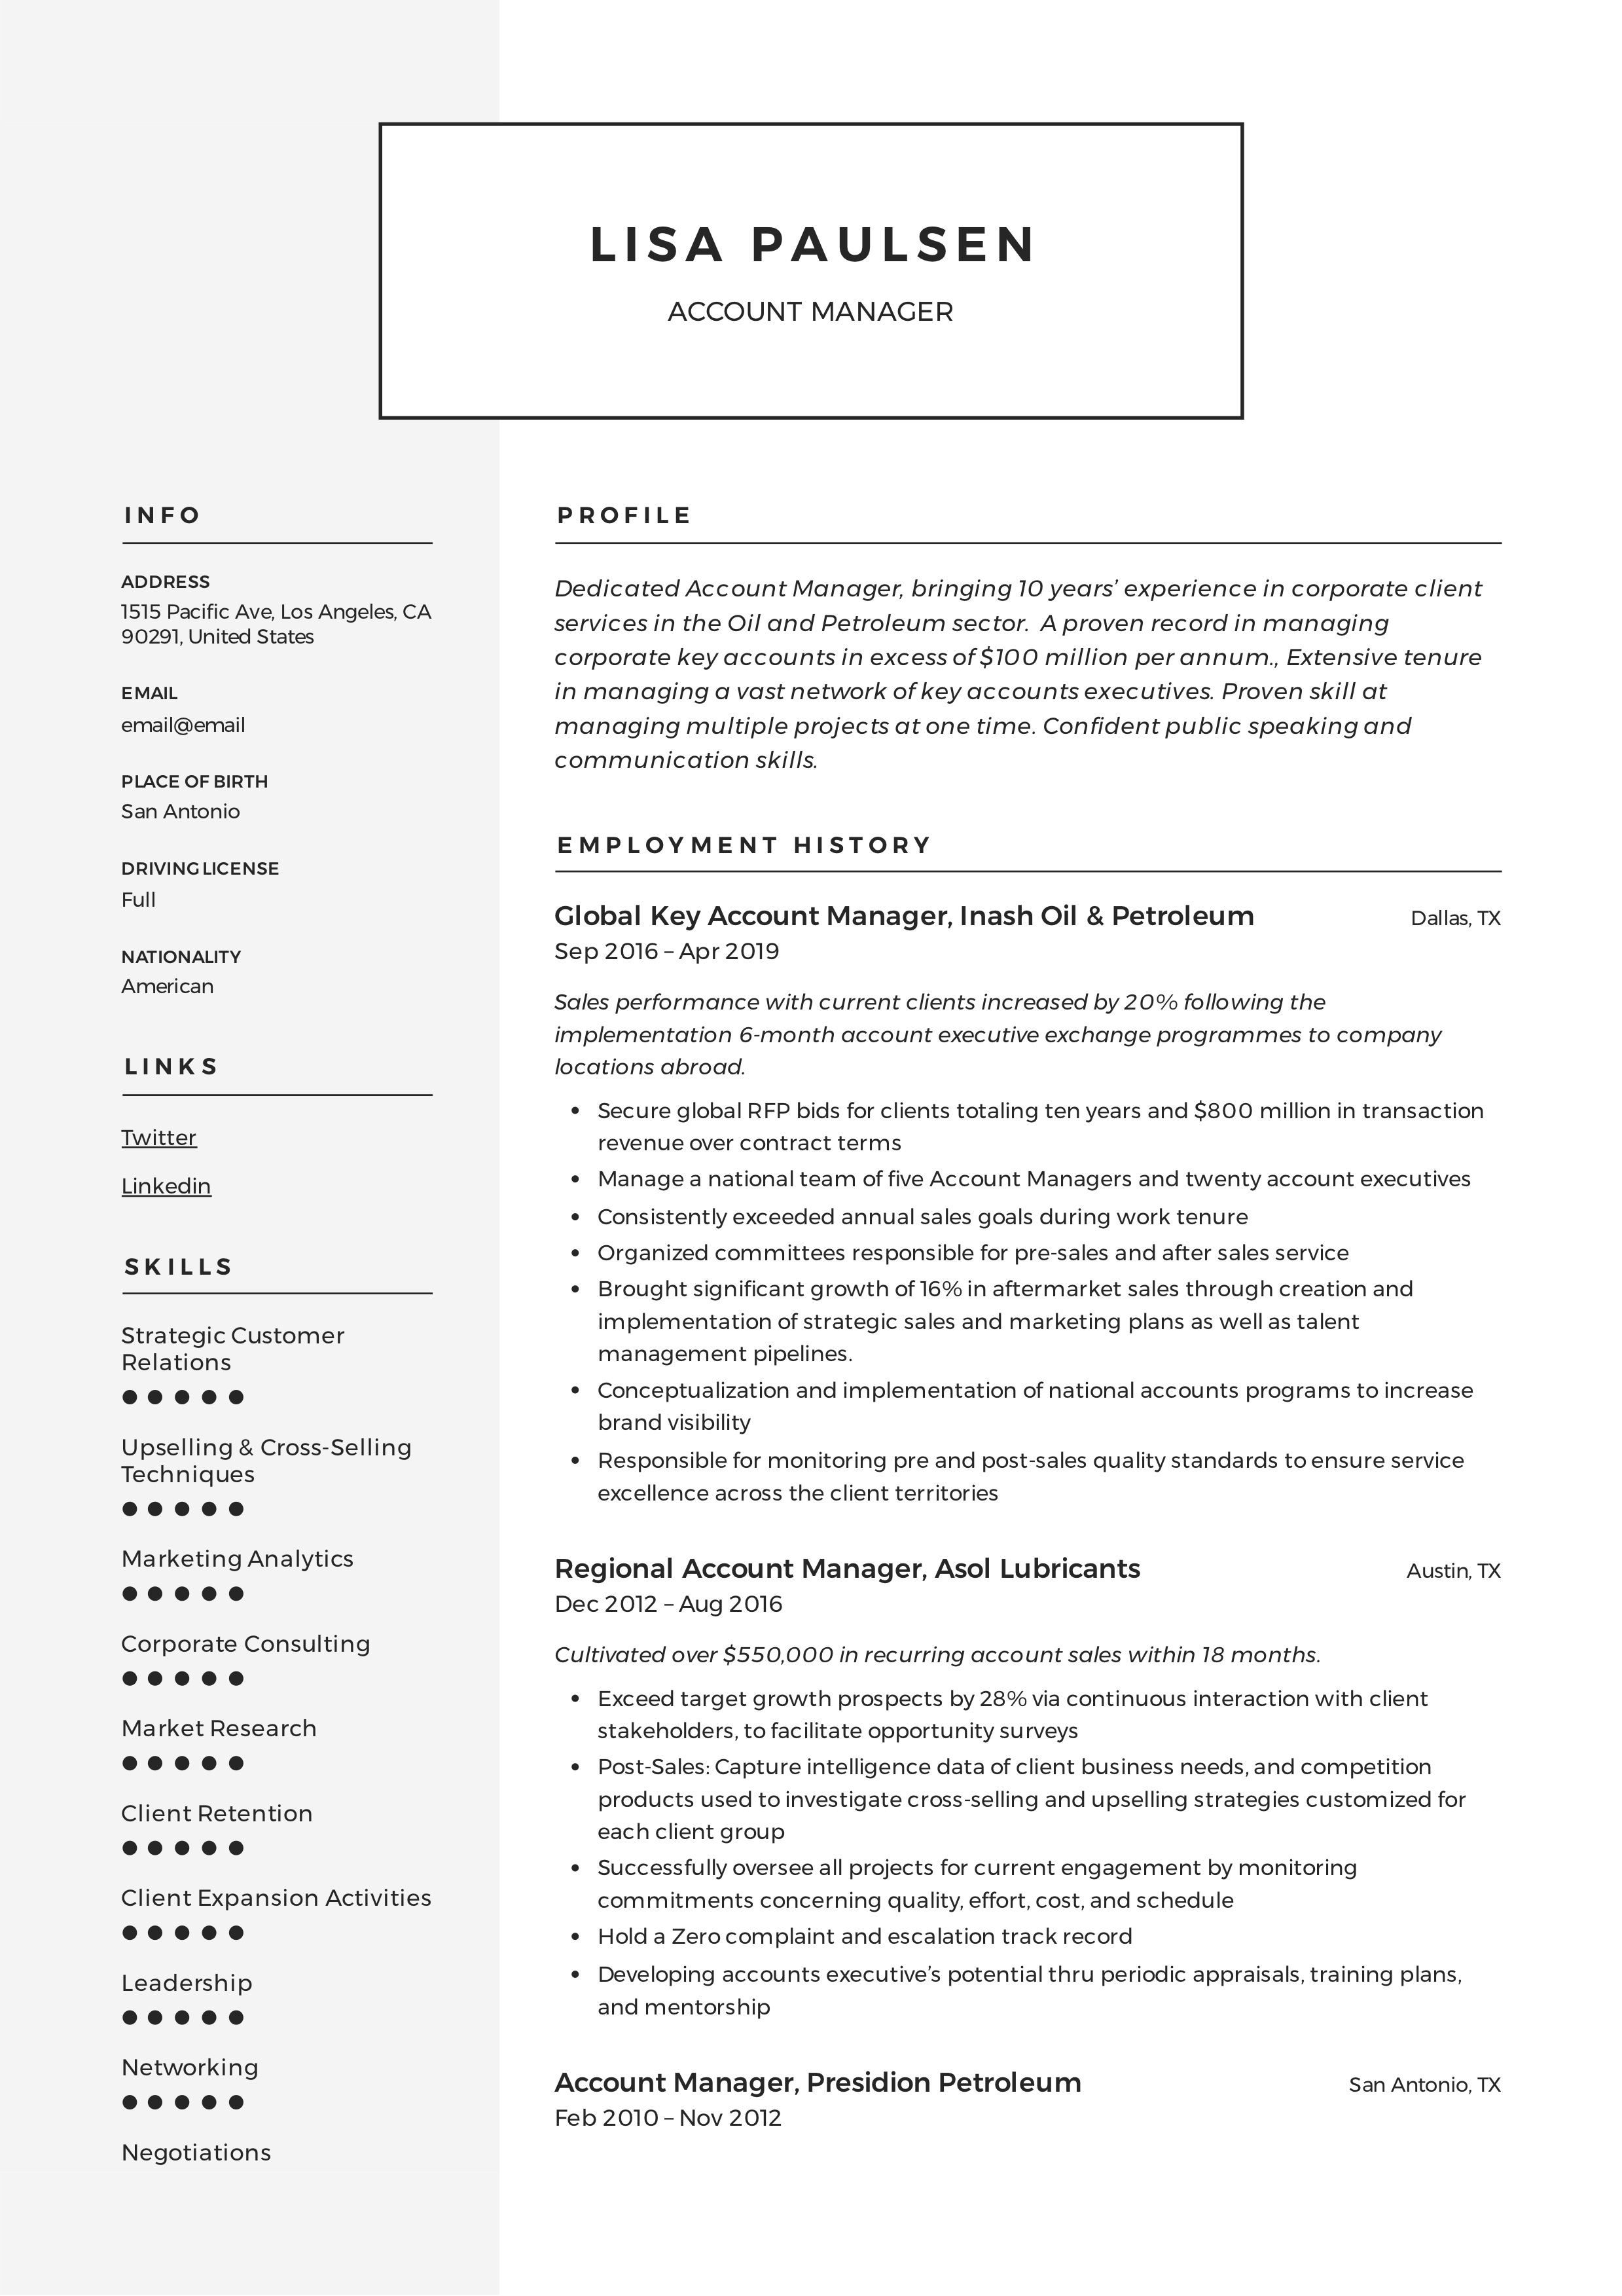 Account manager modern resume example